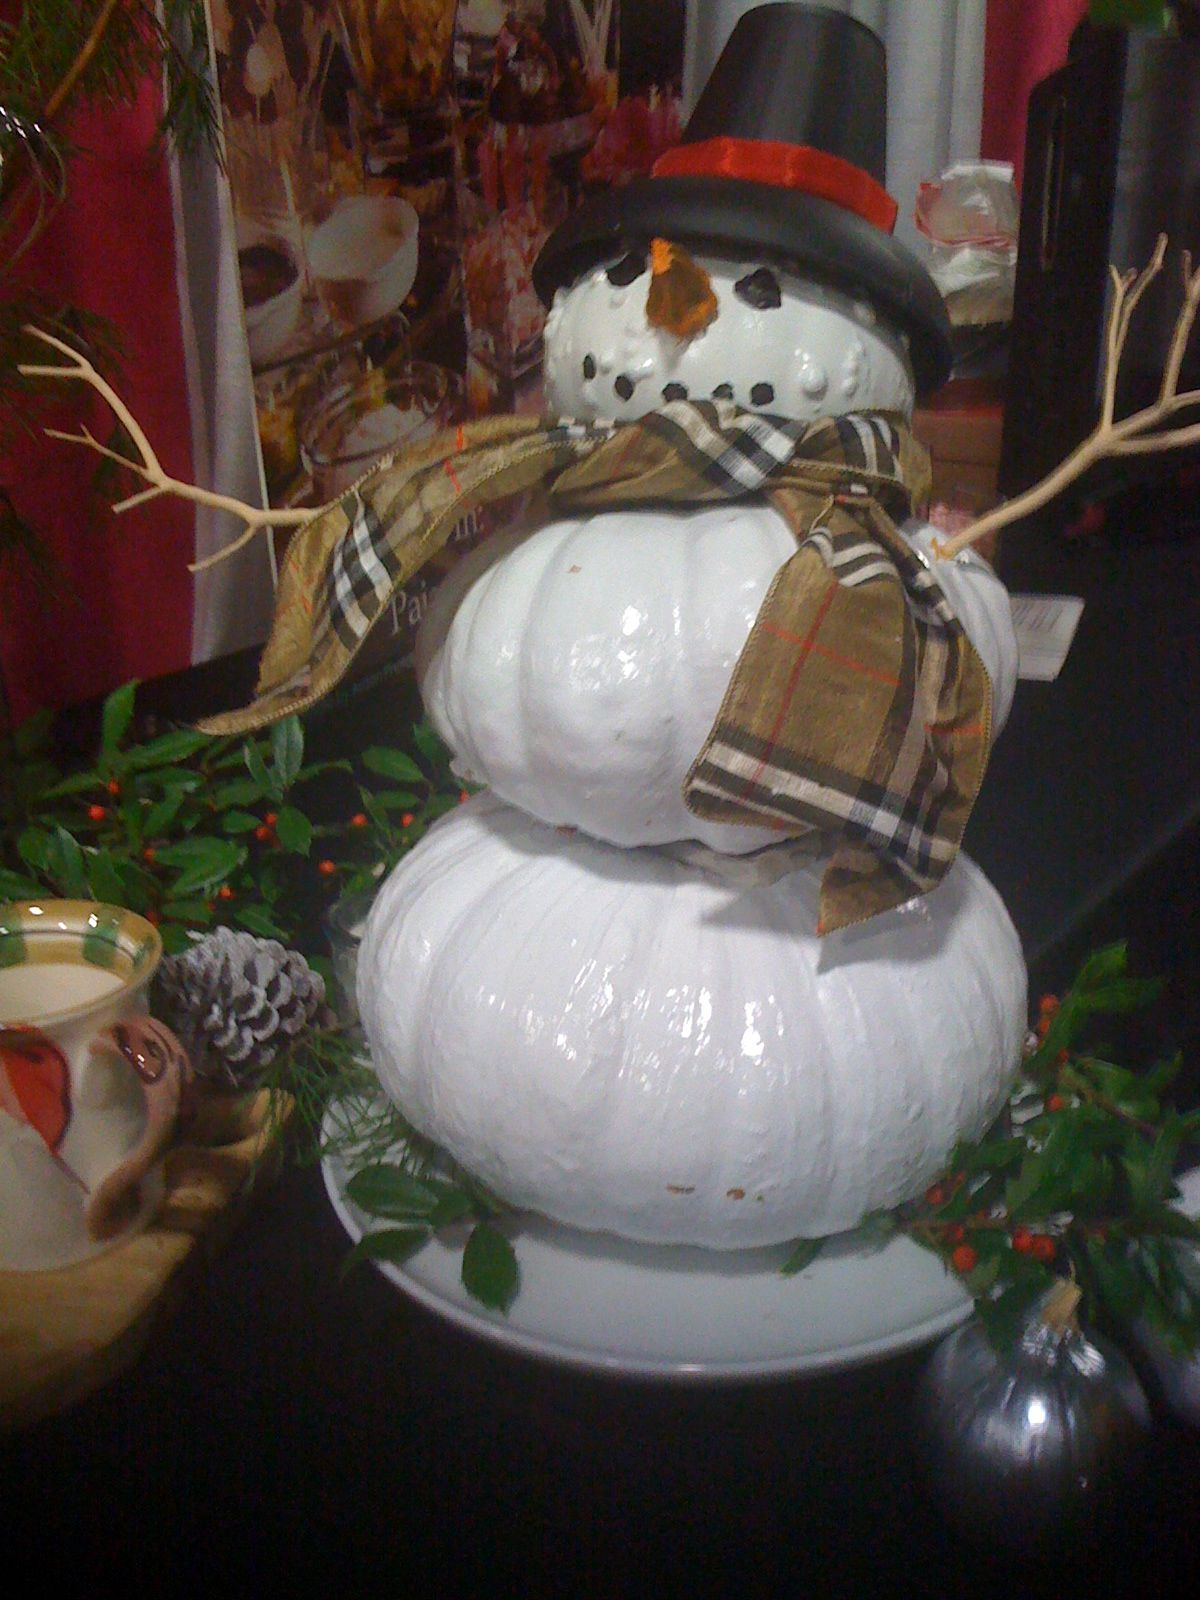 I was looking for ideas for using Thanksgiving pumpkins for Christmas.  I'm totally doing this!  I hate to waste!!